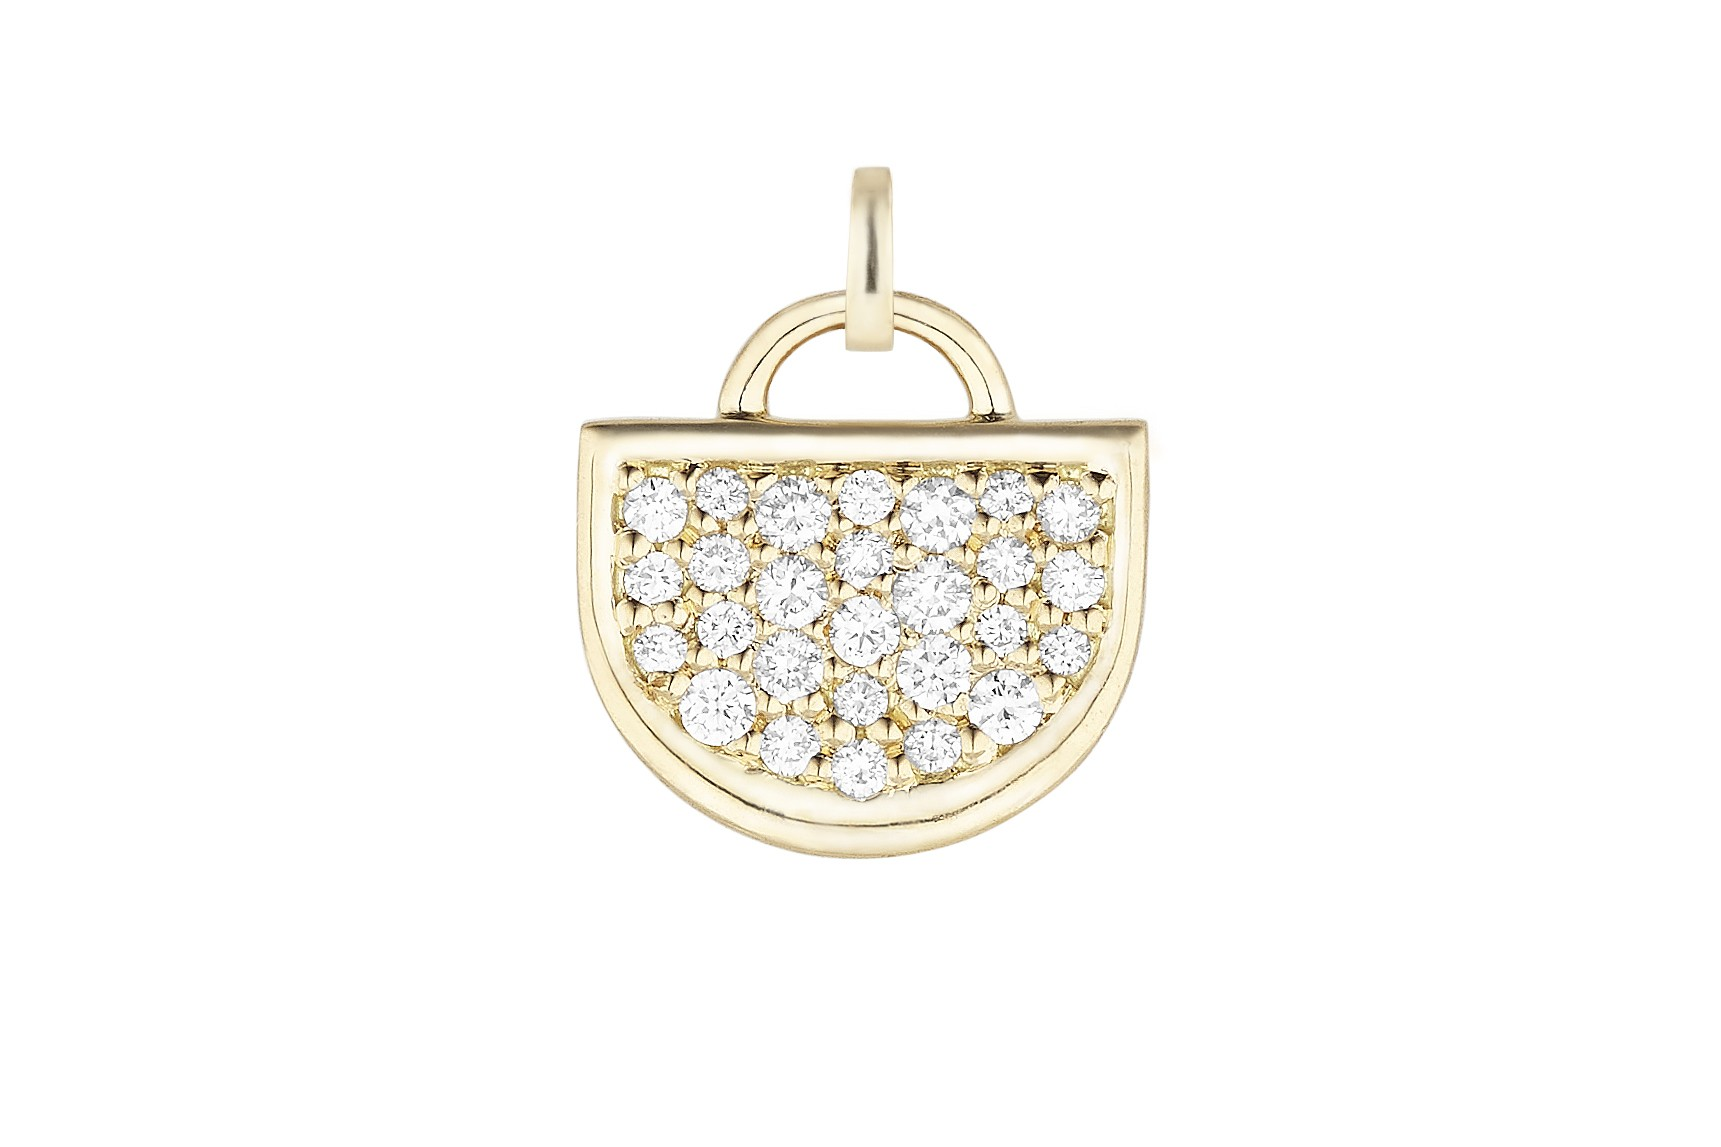 18K Yellow Gold Large Monogram Single D Charm with Lab Created Diamond Pave w/Removable Bail